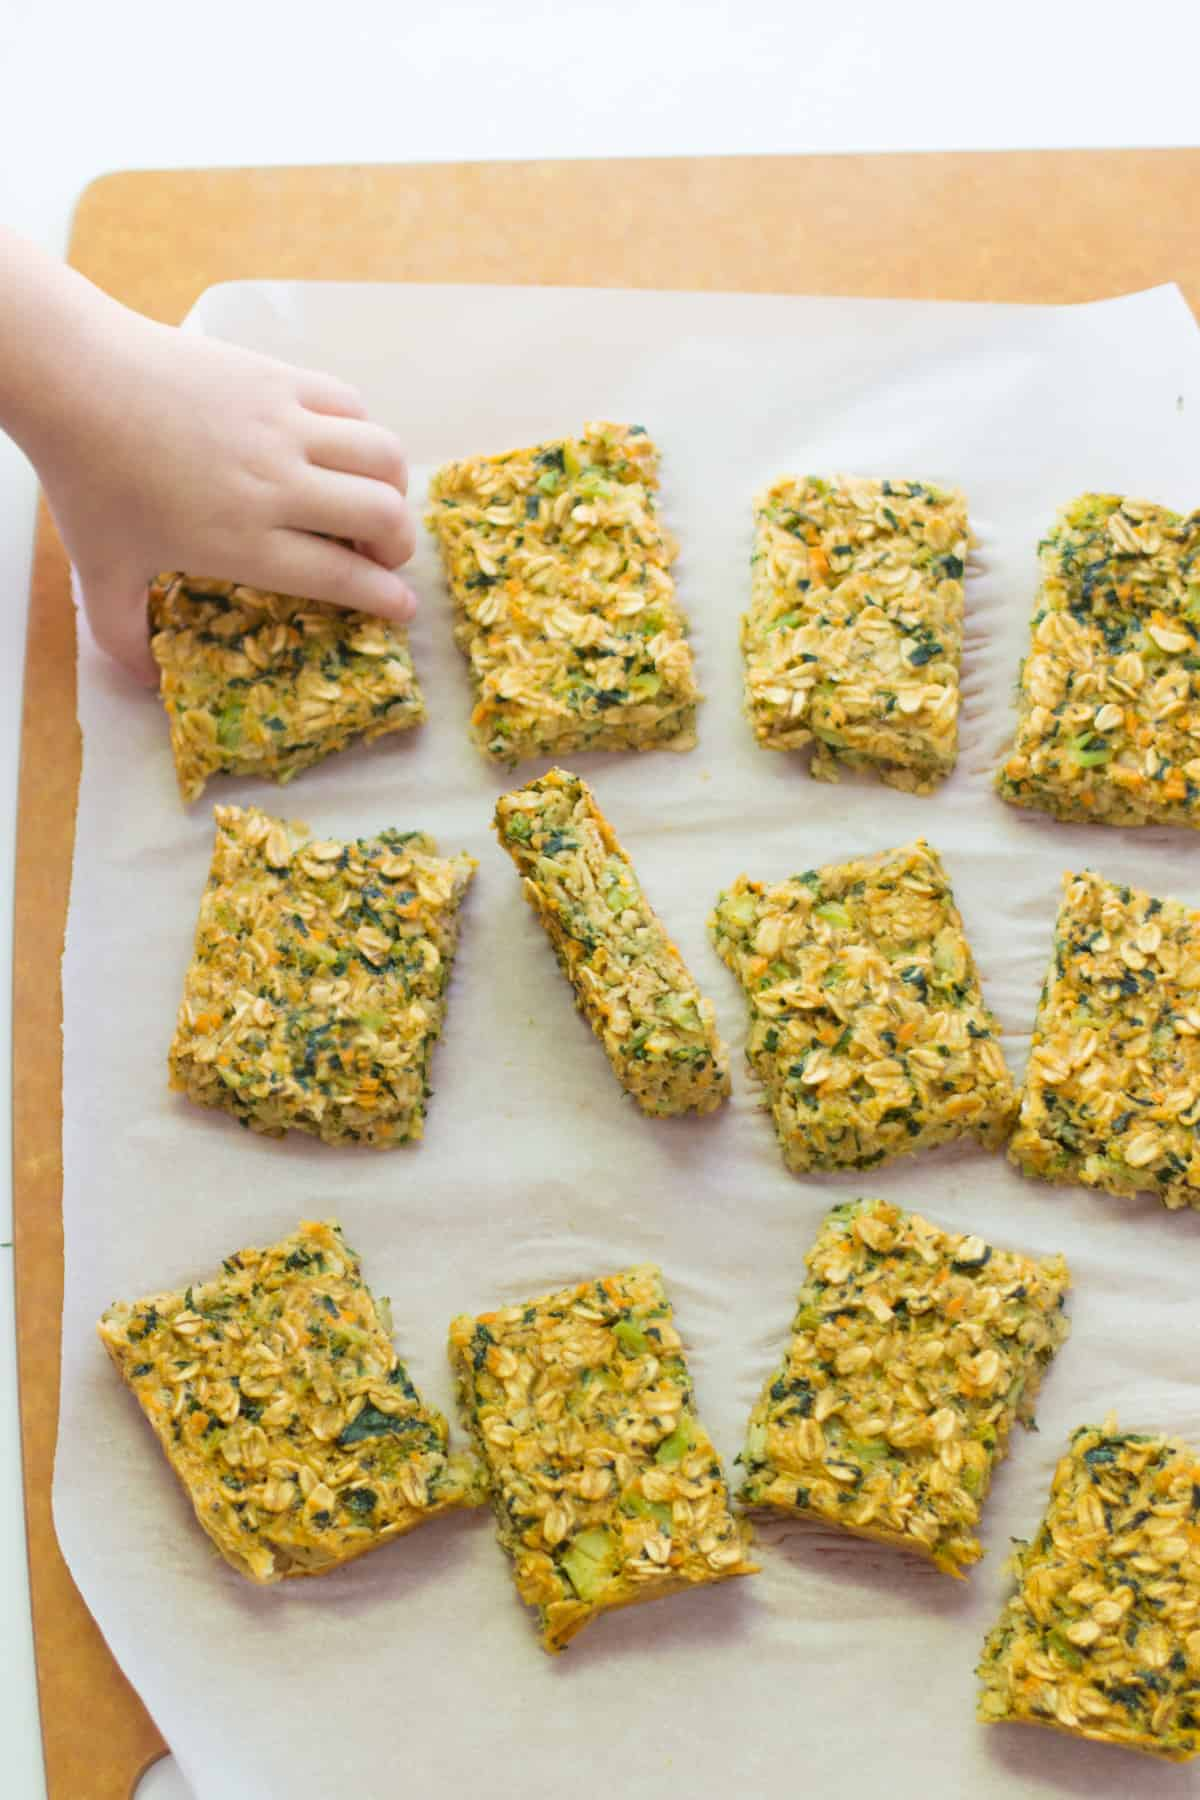 Sliced vegetable oats on a parchment paper with a toddler hand grabbing one piece